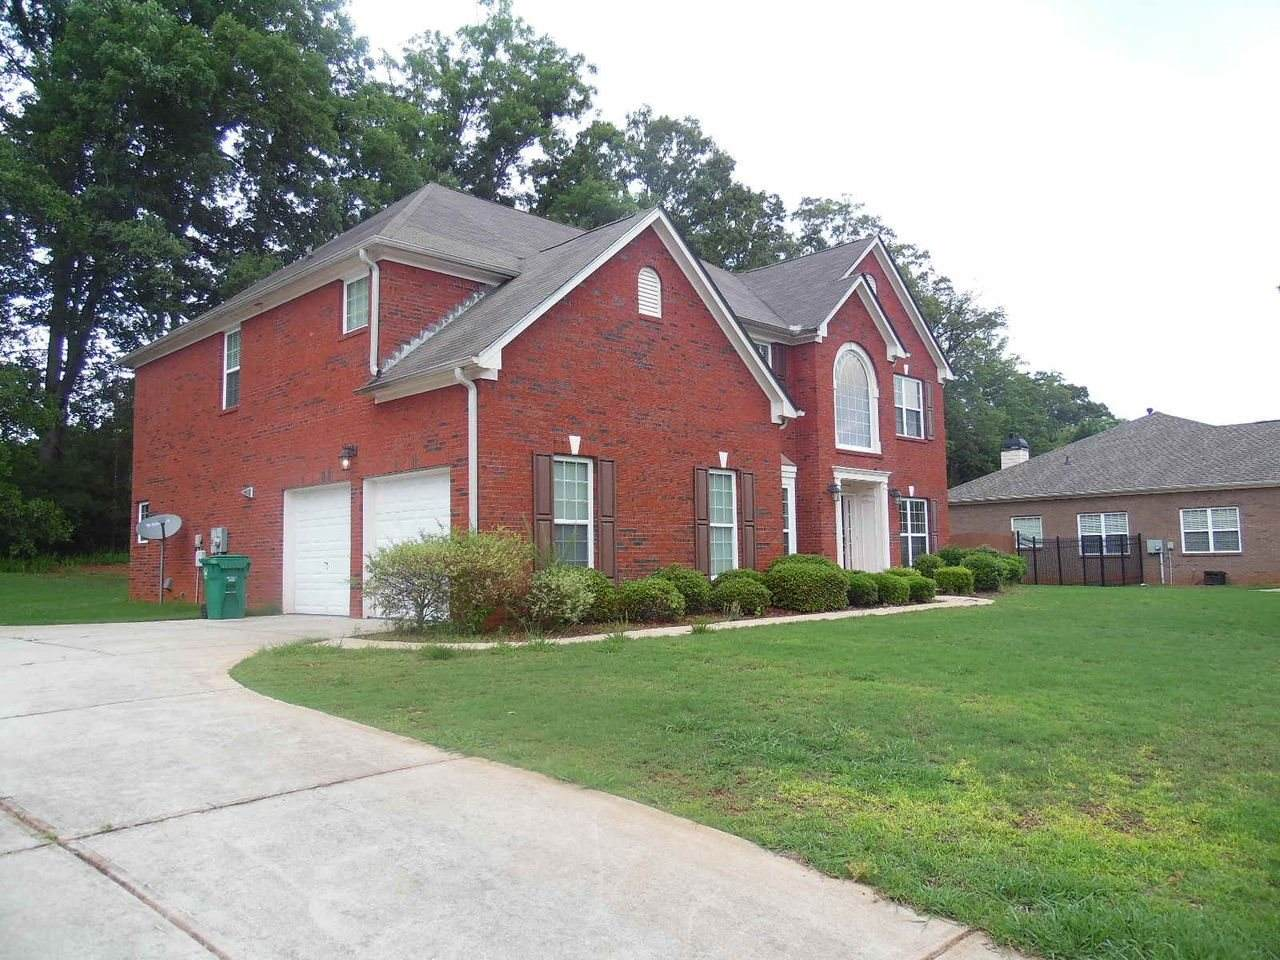 4658 Eagles Wing Ct - Photo 1